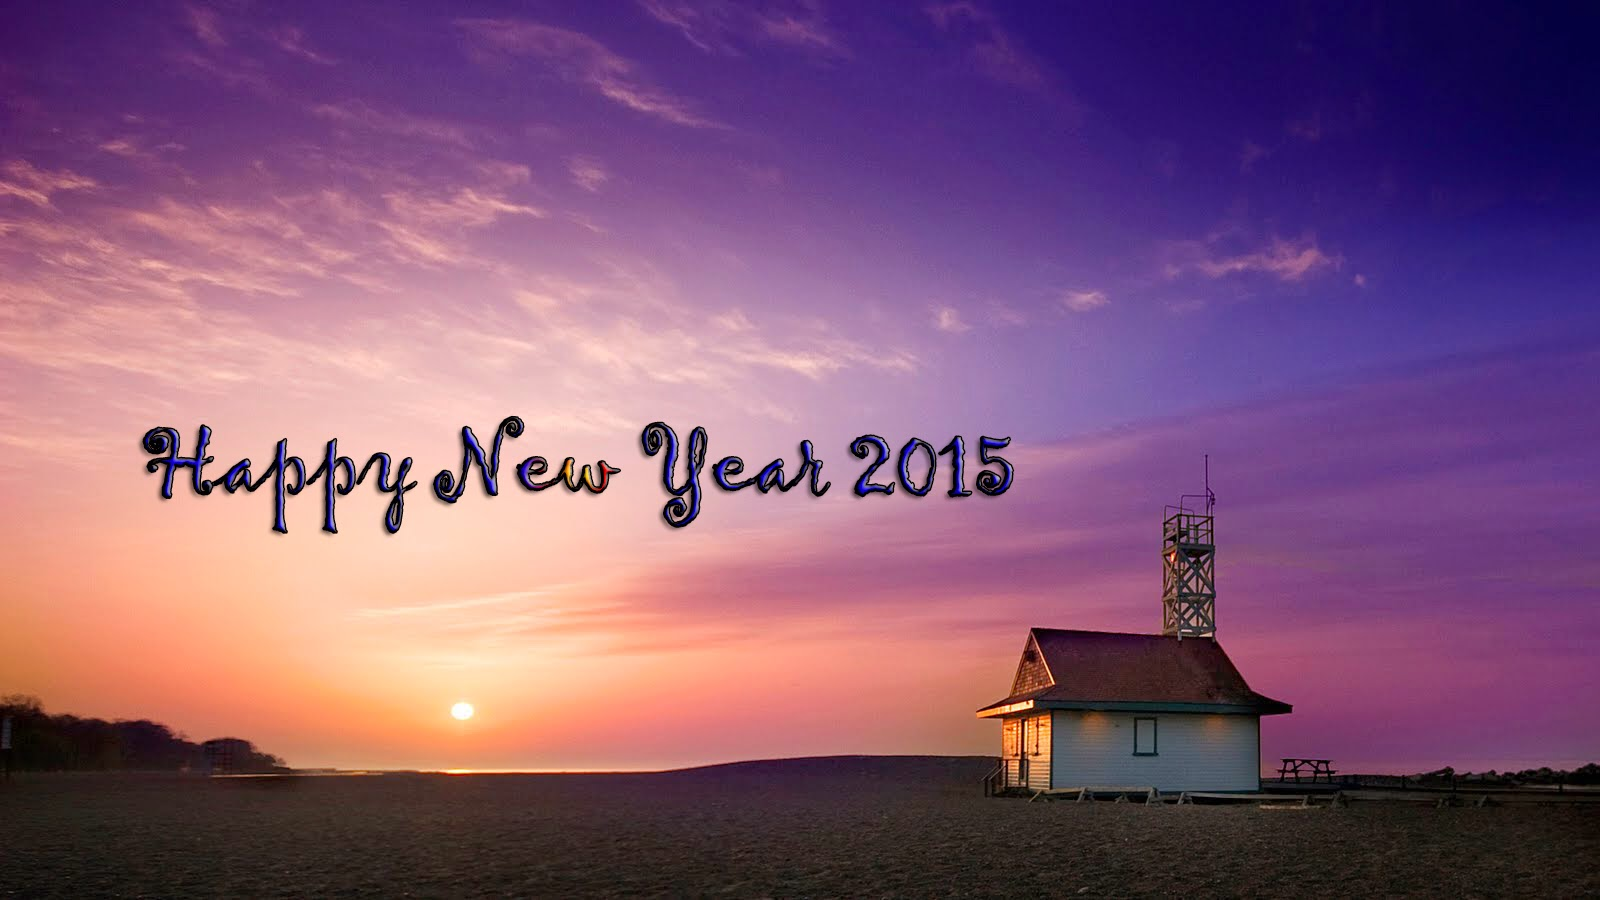 Happy New Year 2015 - Facebook Cover Photos